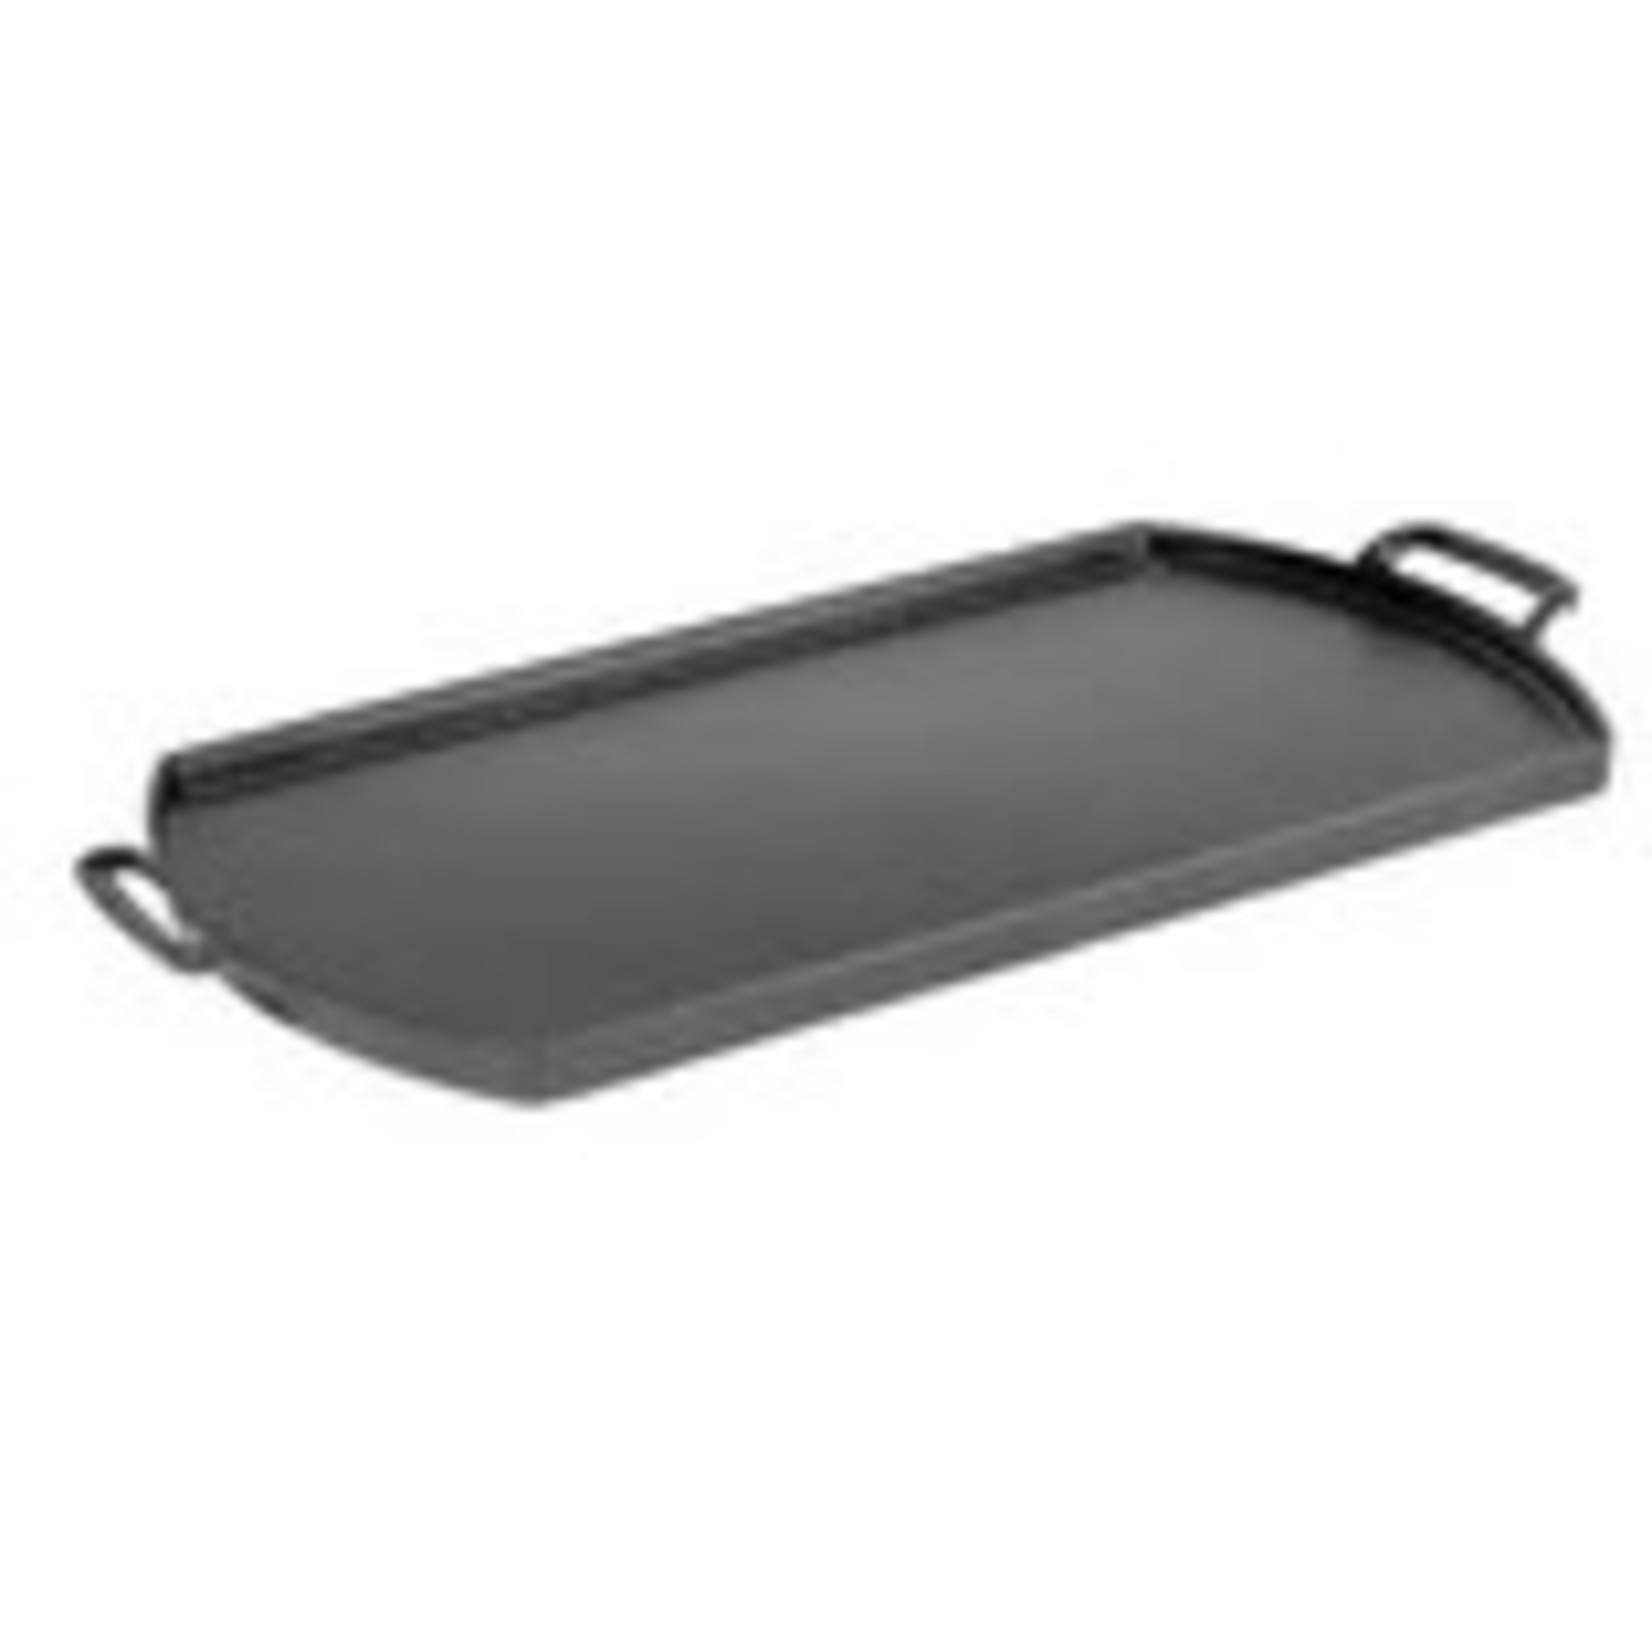 Lodge Blacklock Double Griddle 10x18 inch